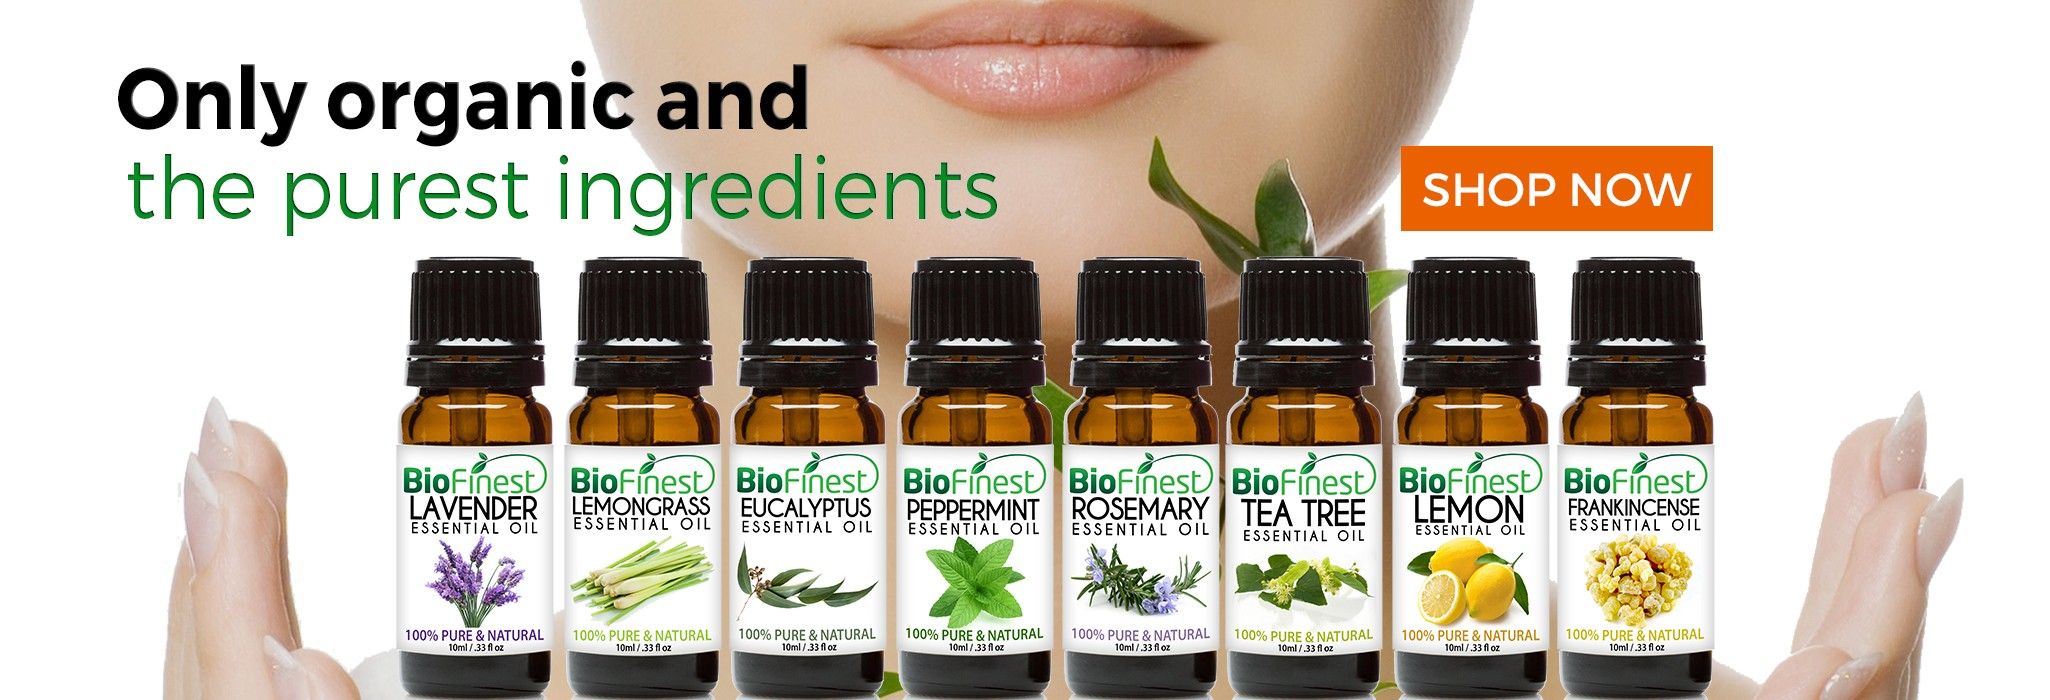 Biofinest 100% Pure Essential Oil, Organic Carrier Oil and Base Oil